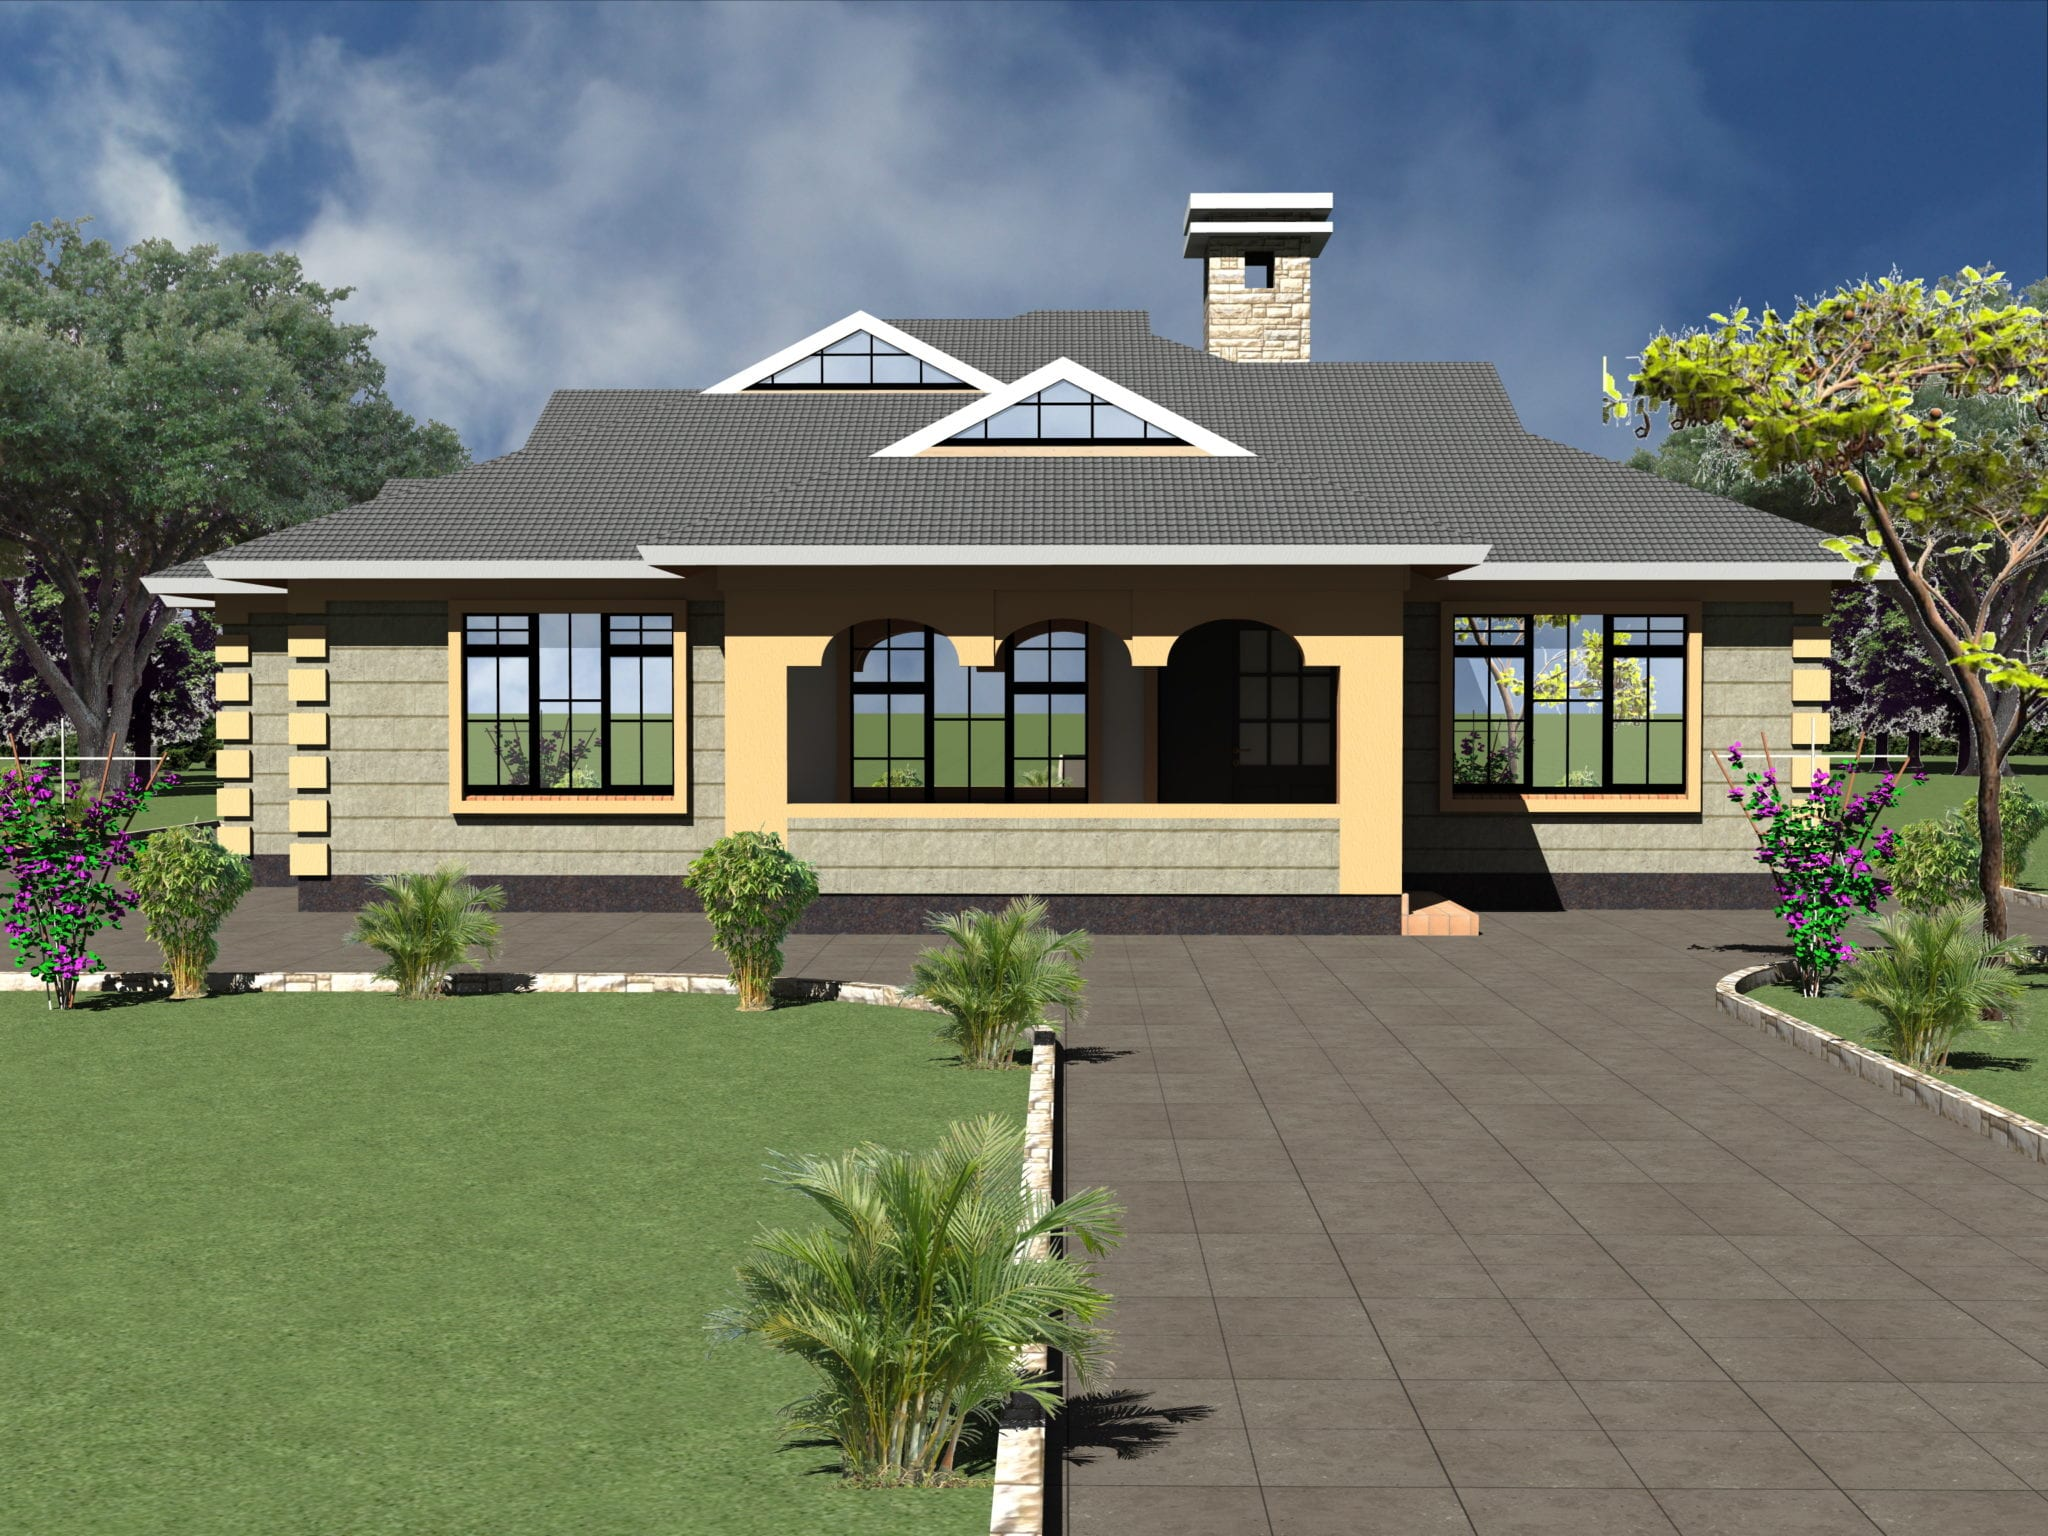 4 Bedroom House Designs In Kenya House Decor Interior